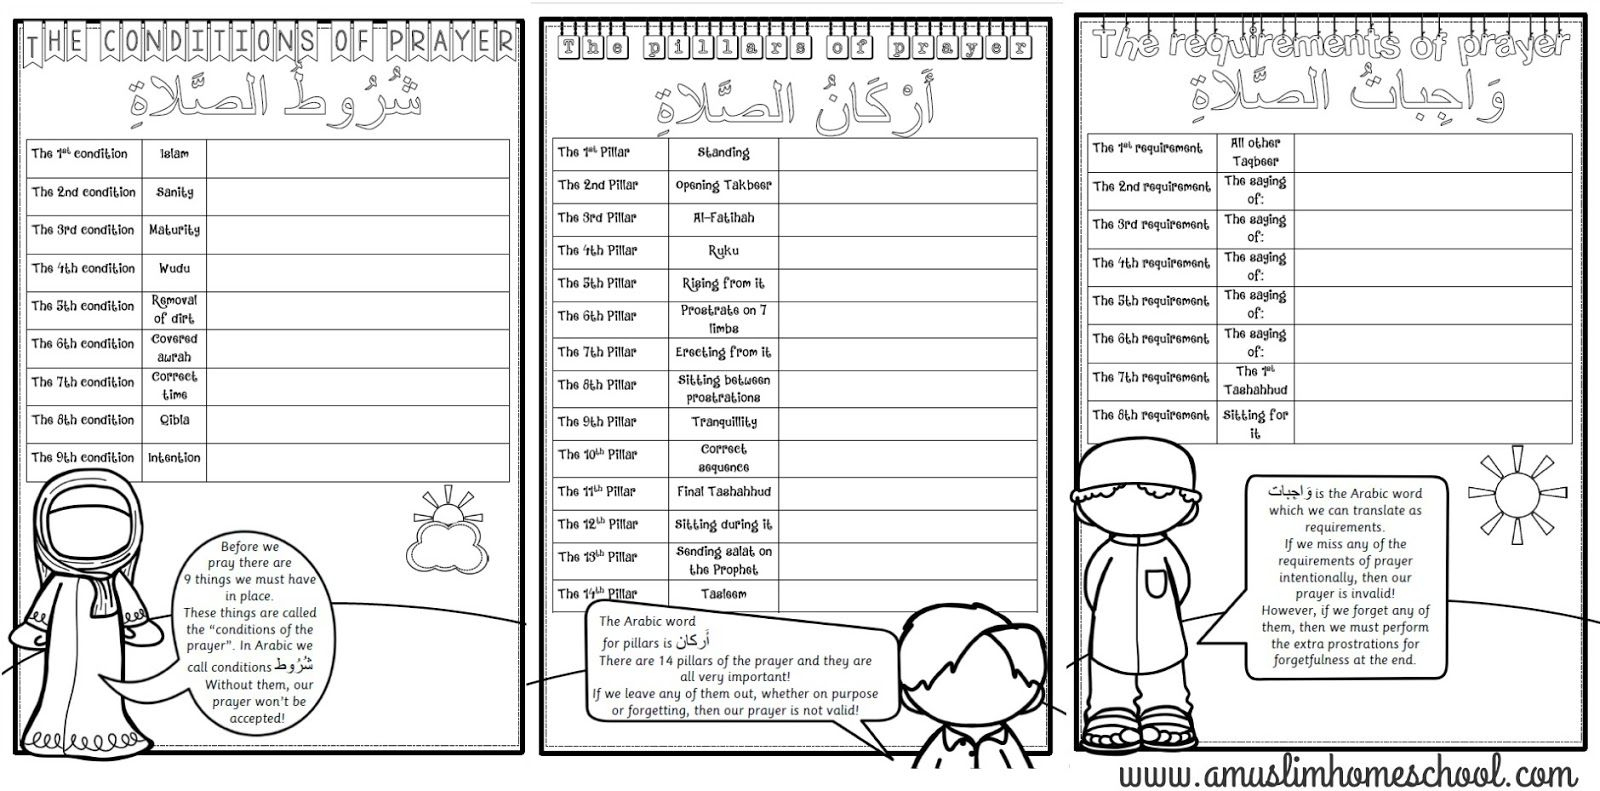 Salaah Worksheet Folder Printable; The Conditions, Pillars And | Islamic Printable Worksheets